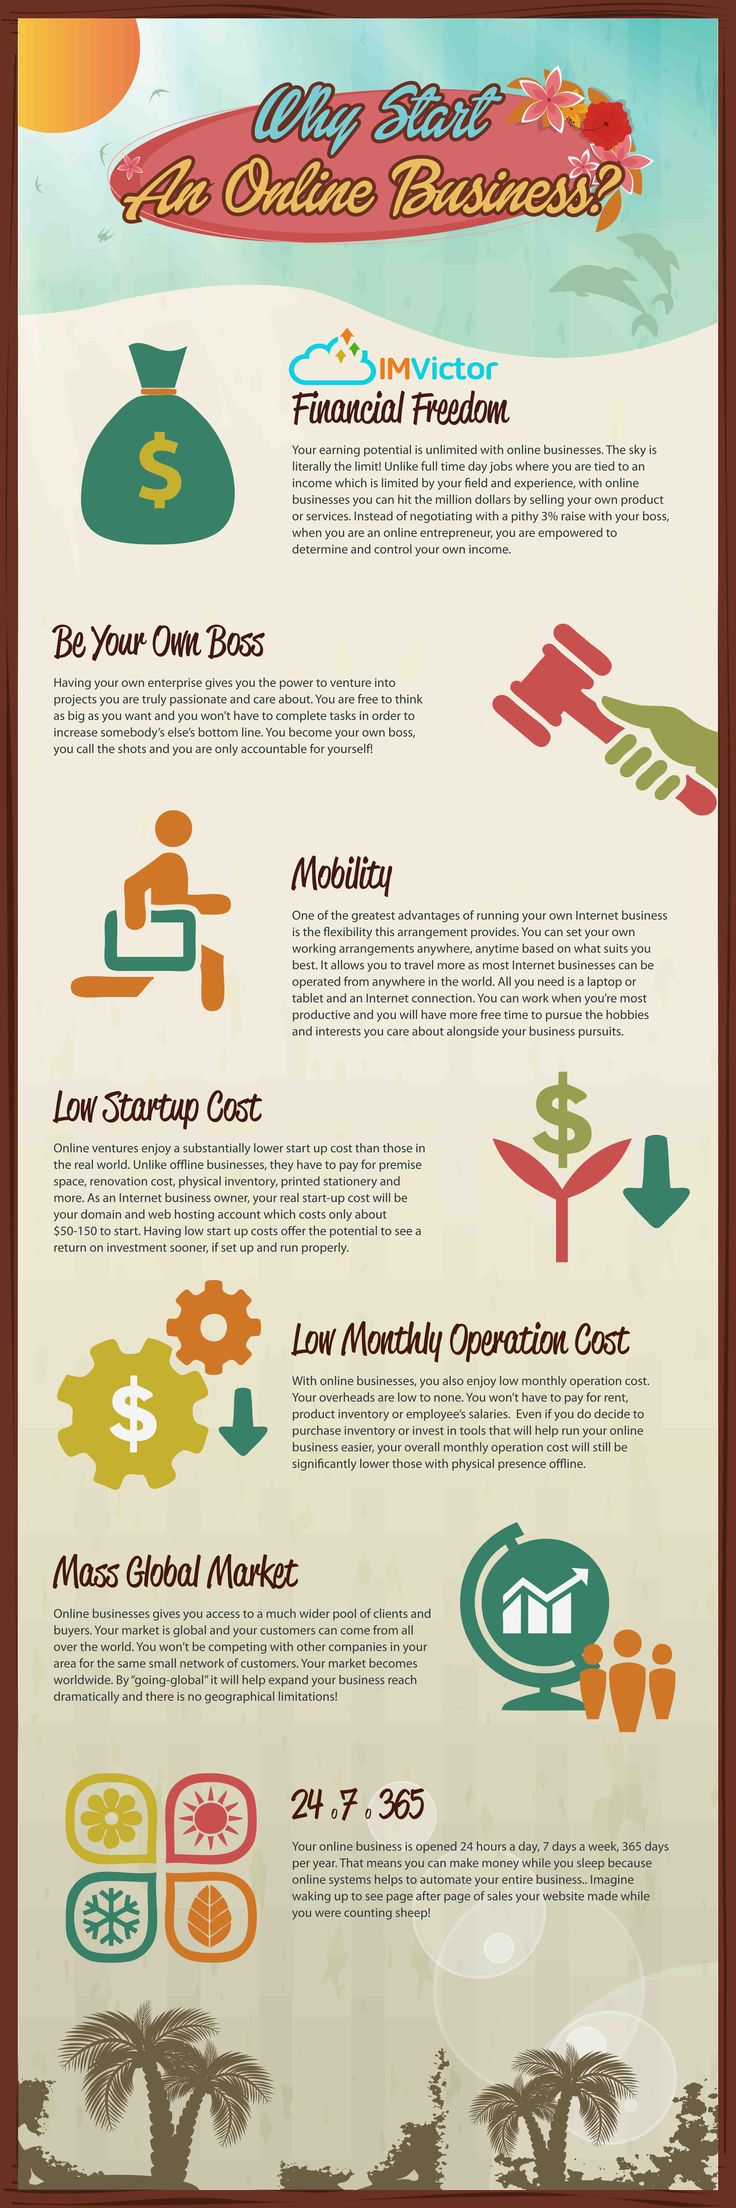 Why Start An Online Business?  #Infographic #OnlineBusiness #Business